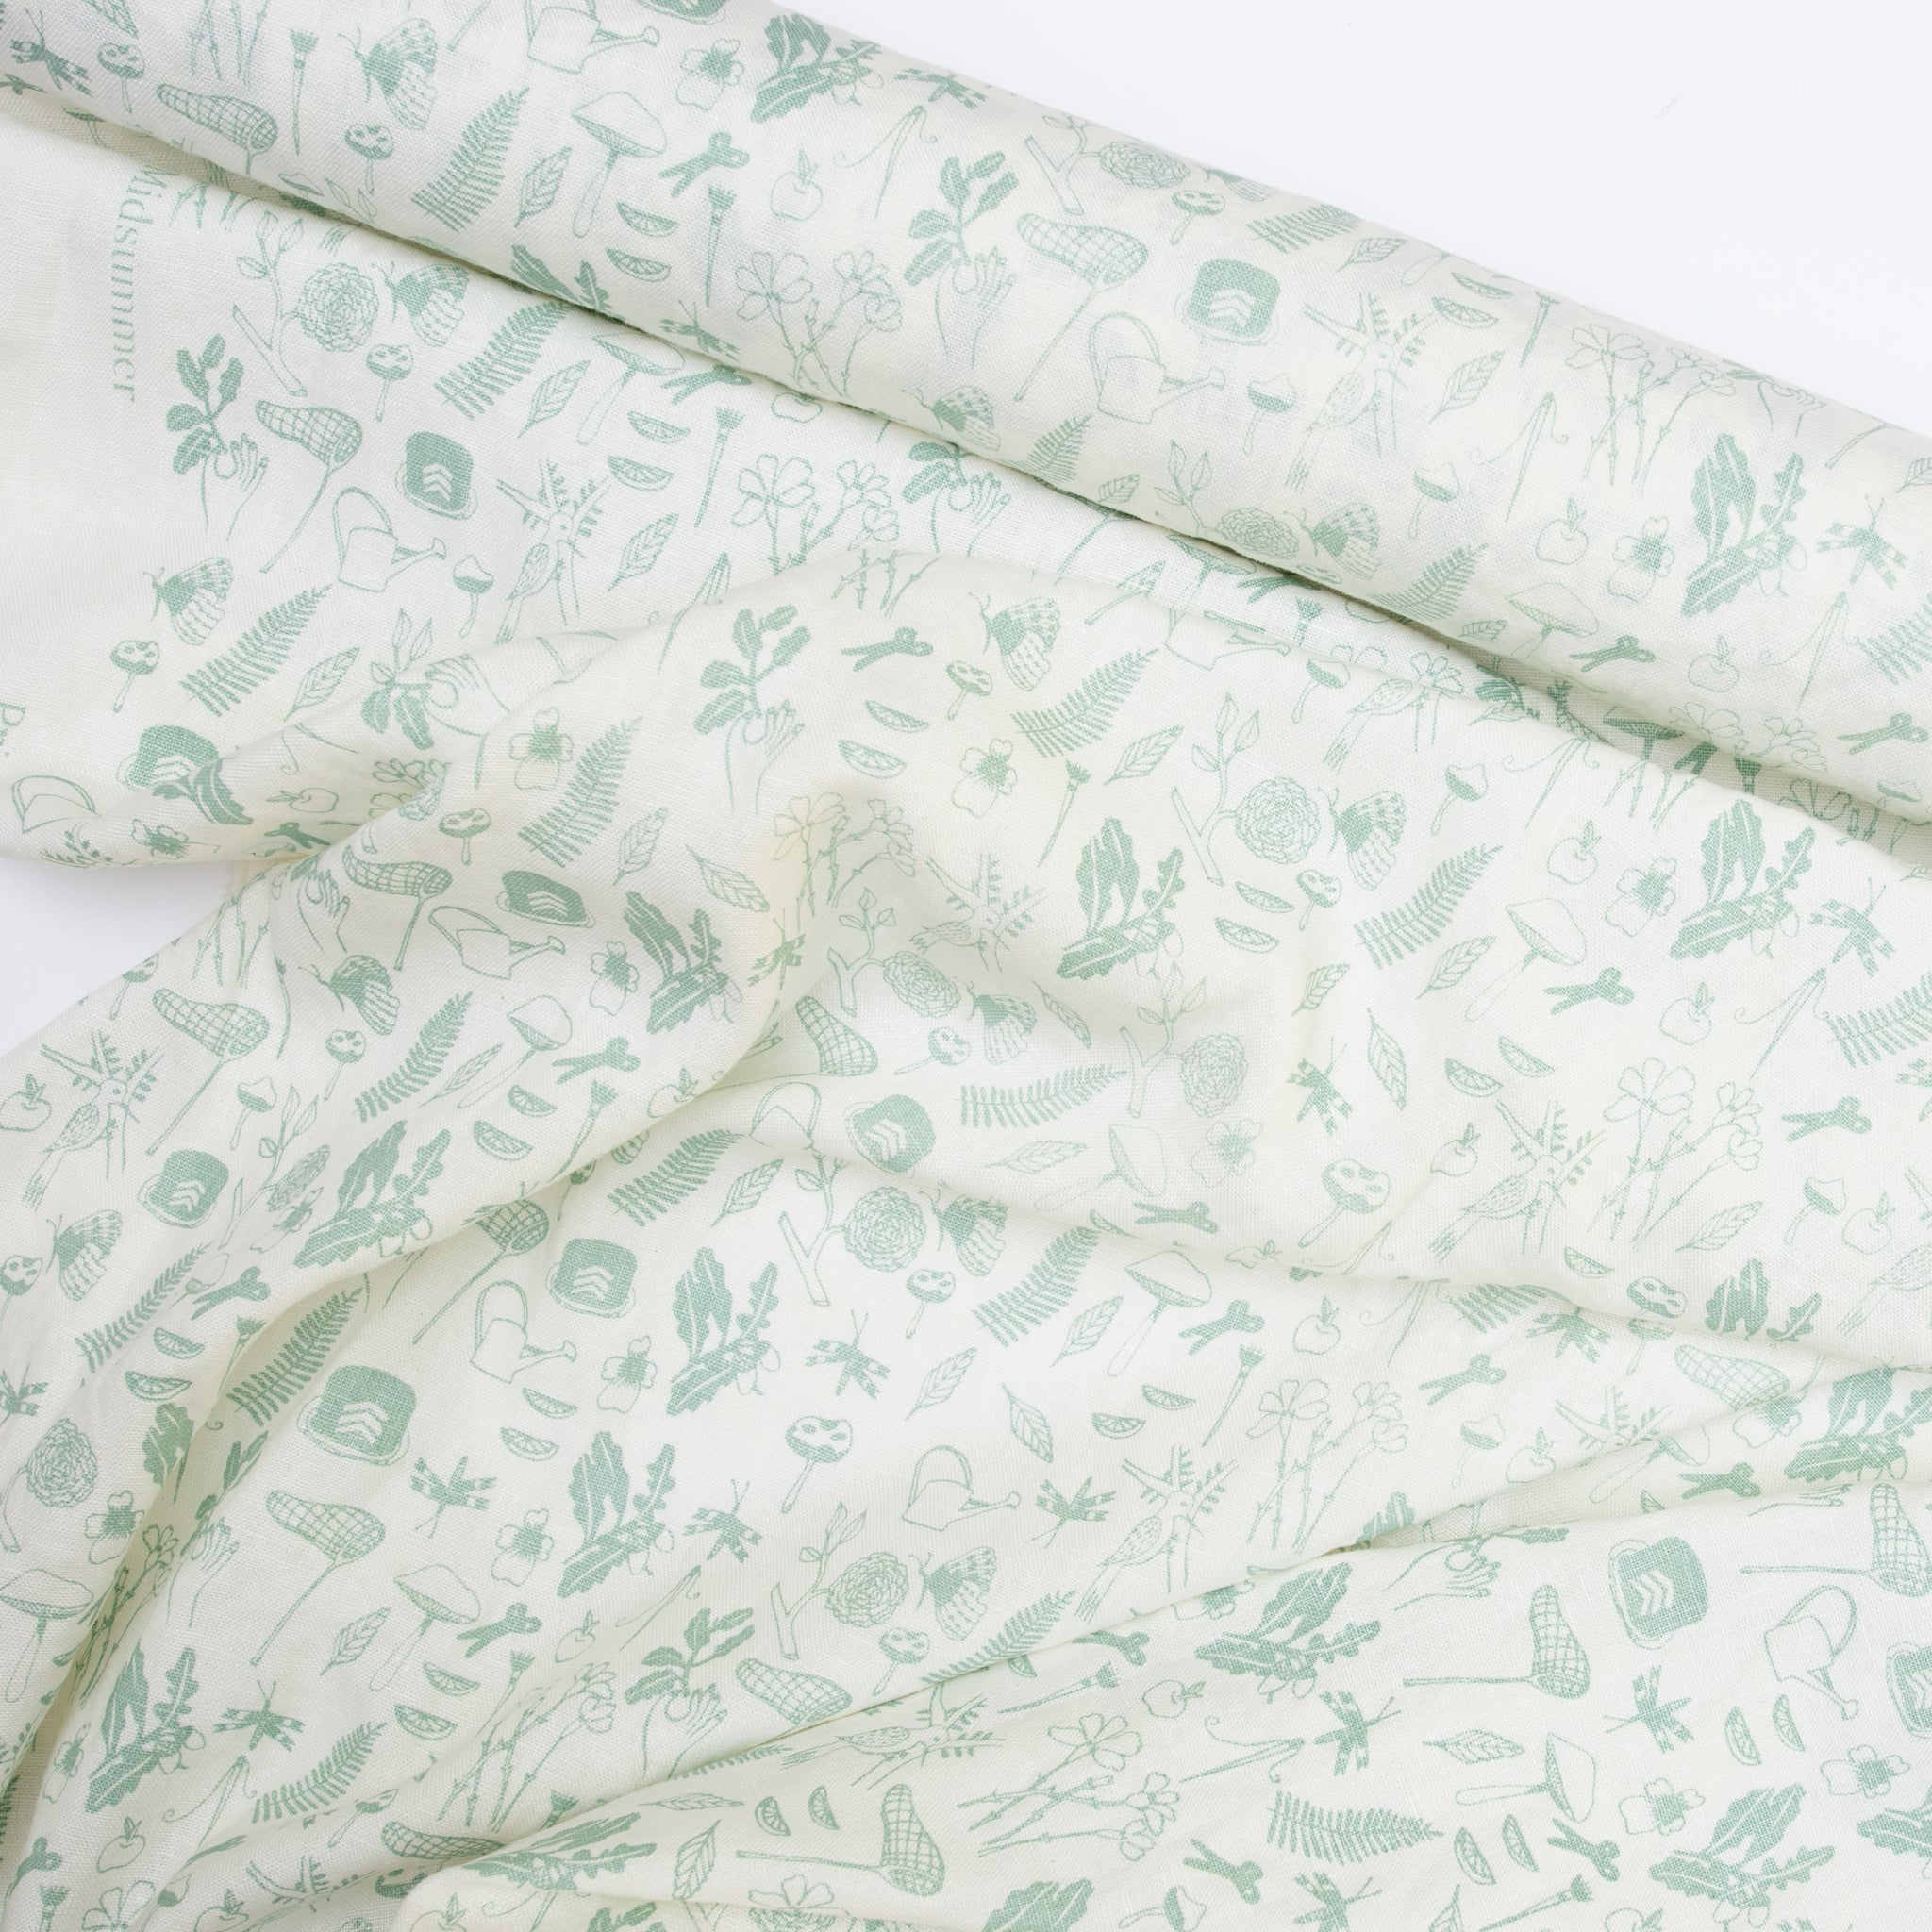 Screen printed fabric yardage with little illustrations in green